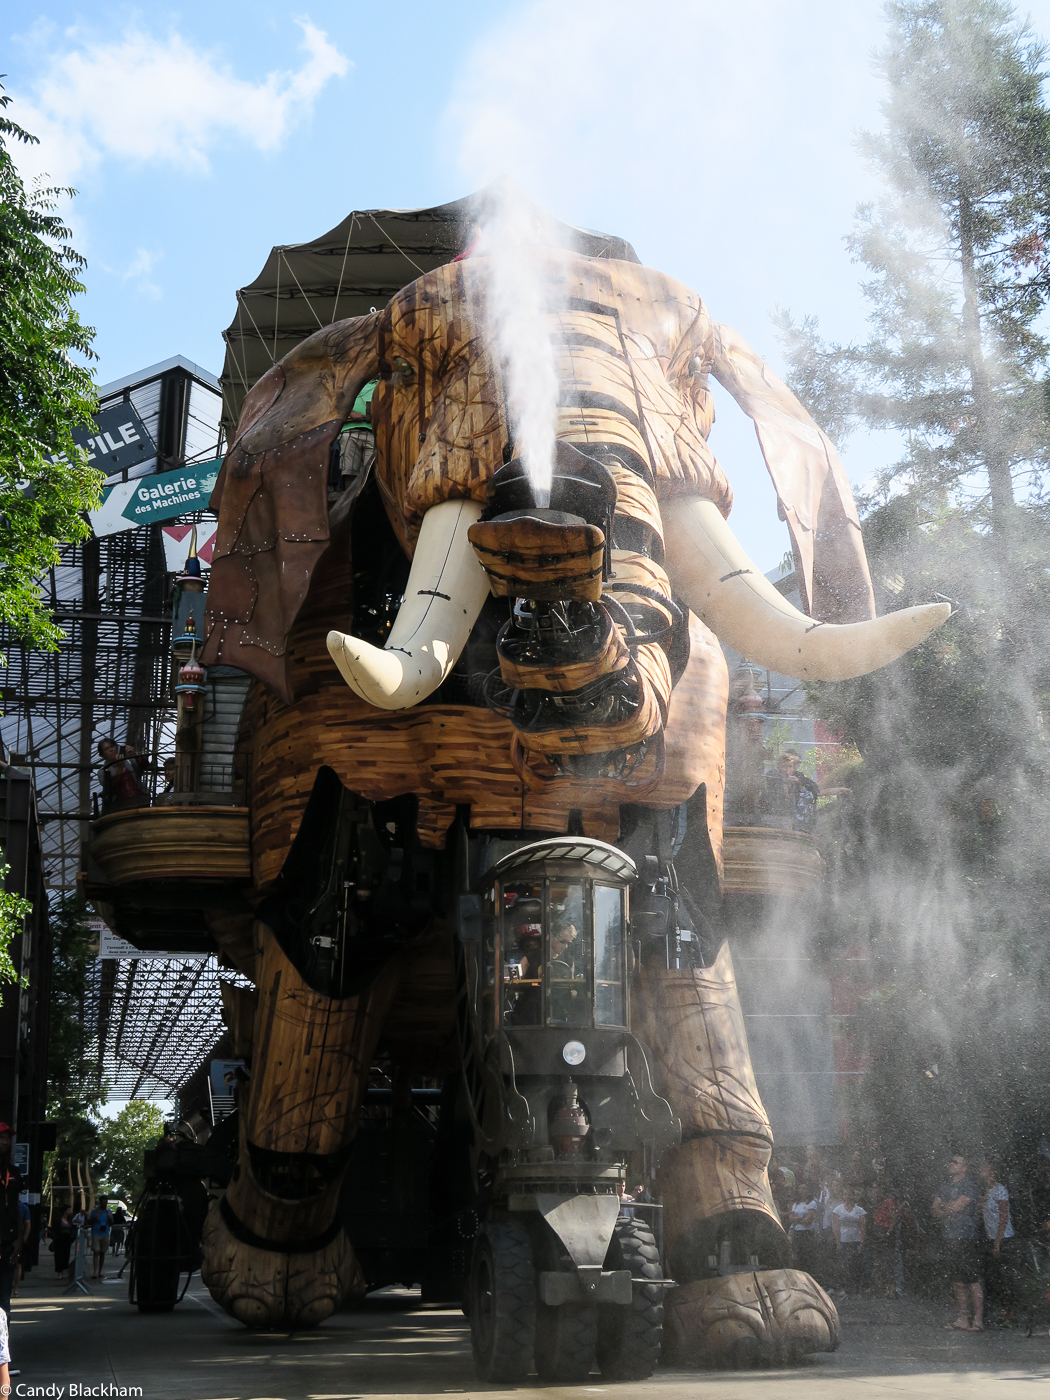 The Mechanical Elephant, Nantes